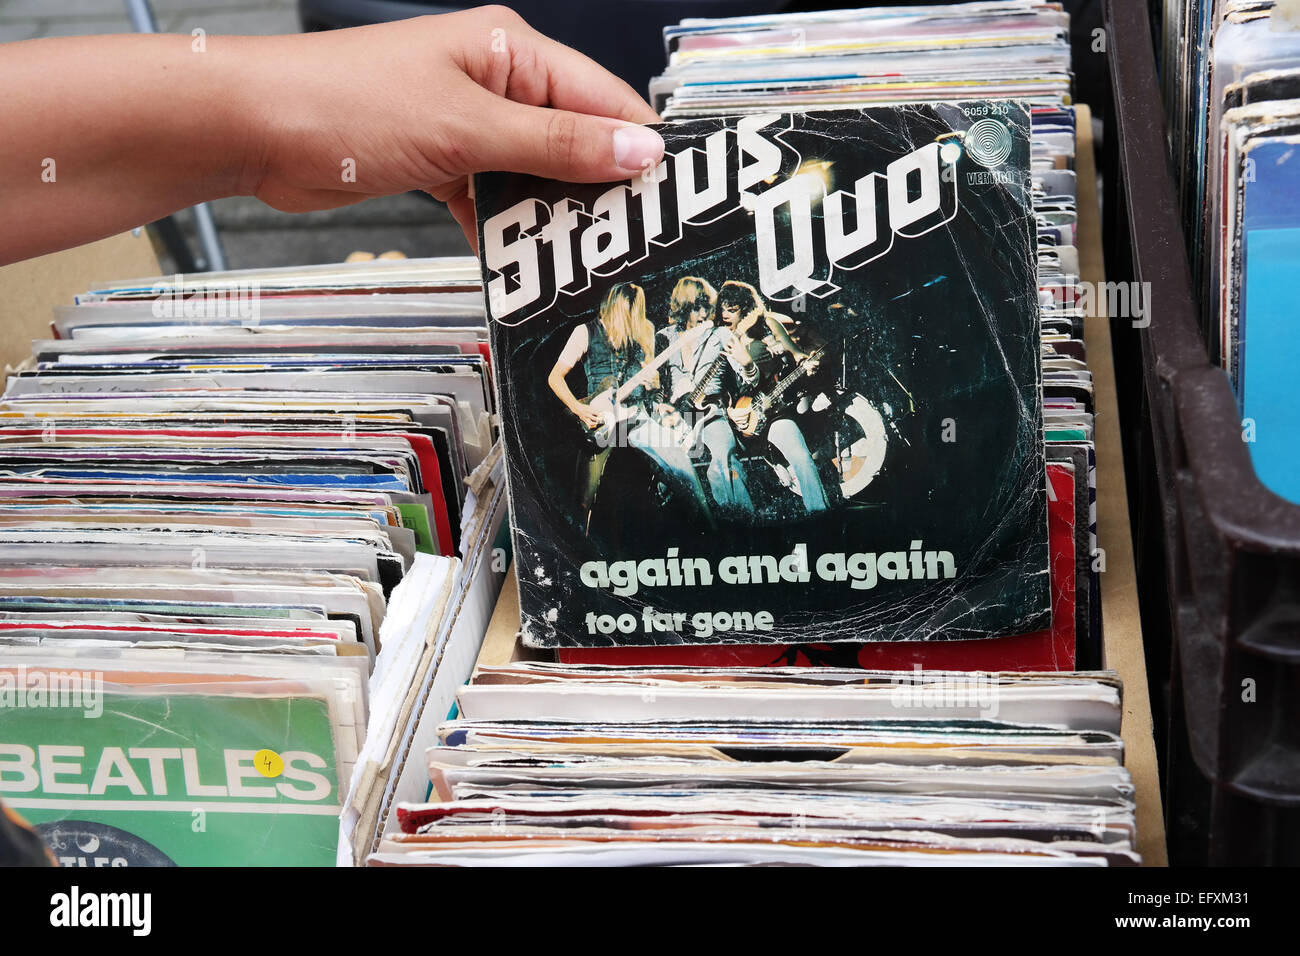 BELGIUM - JULY 2014  Single record of the English rock band Status Quo, again and again, on a flea market - Stock Image